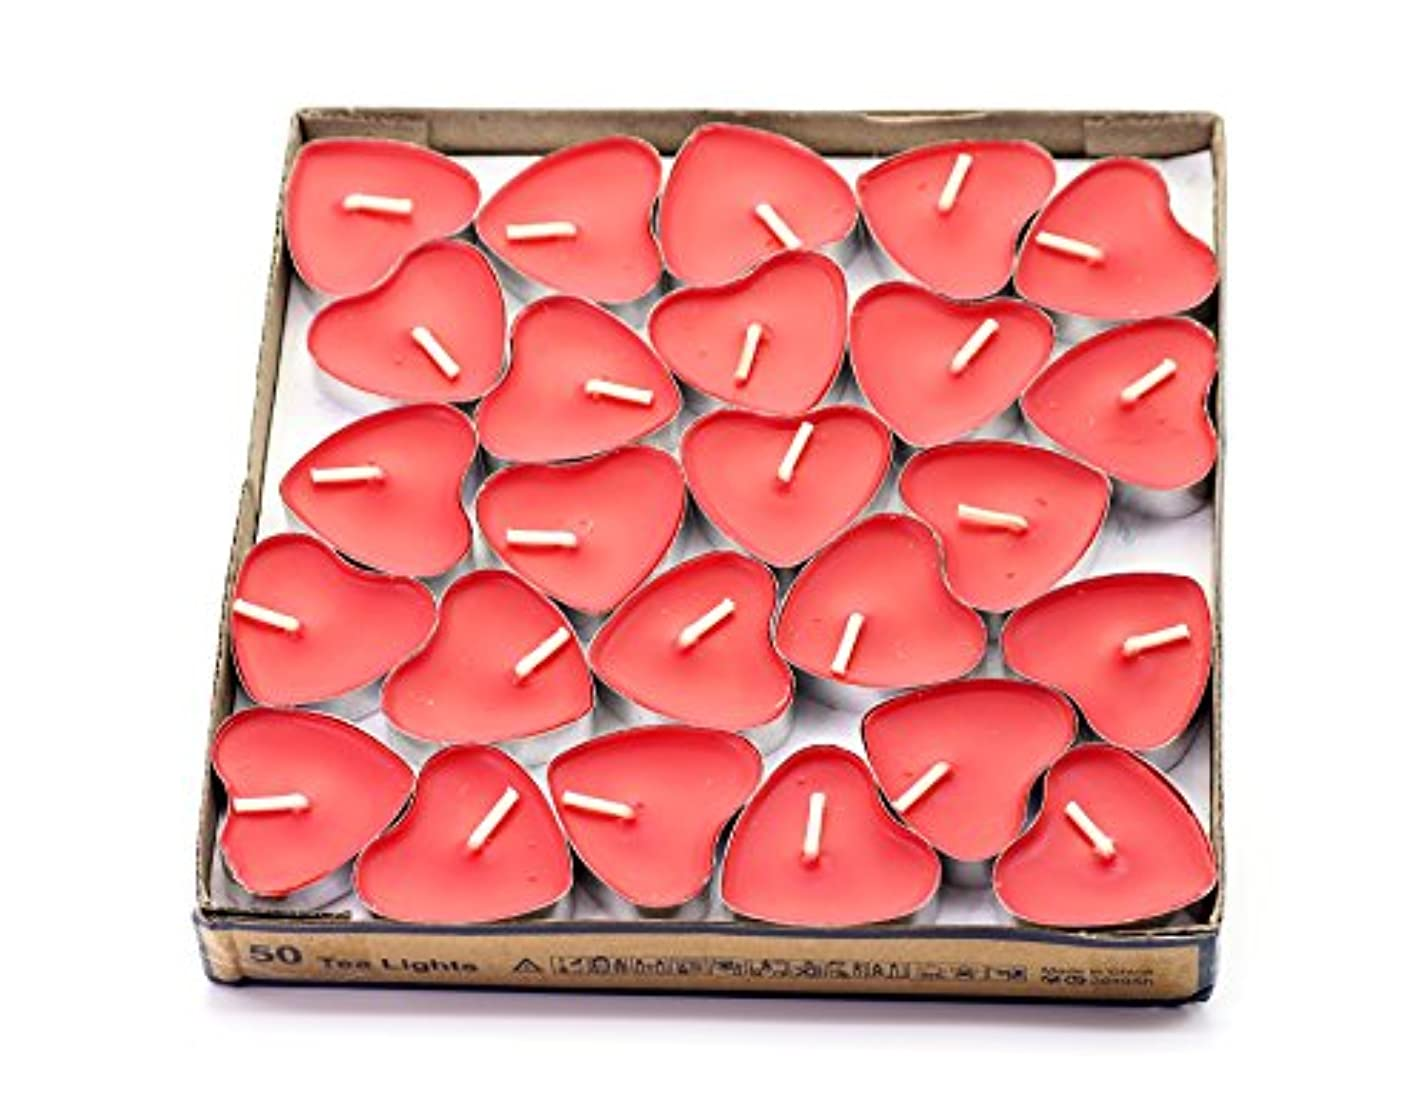 ブラウザ技術魔法(Red(strawberry)) - Creationtop Scented Candles Tea Lights Mini Hearts Home Decor Aroma Candles Set of 50 pcs...